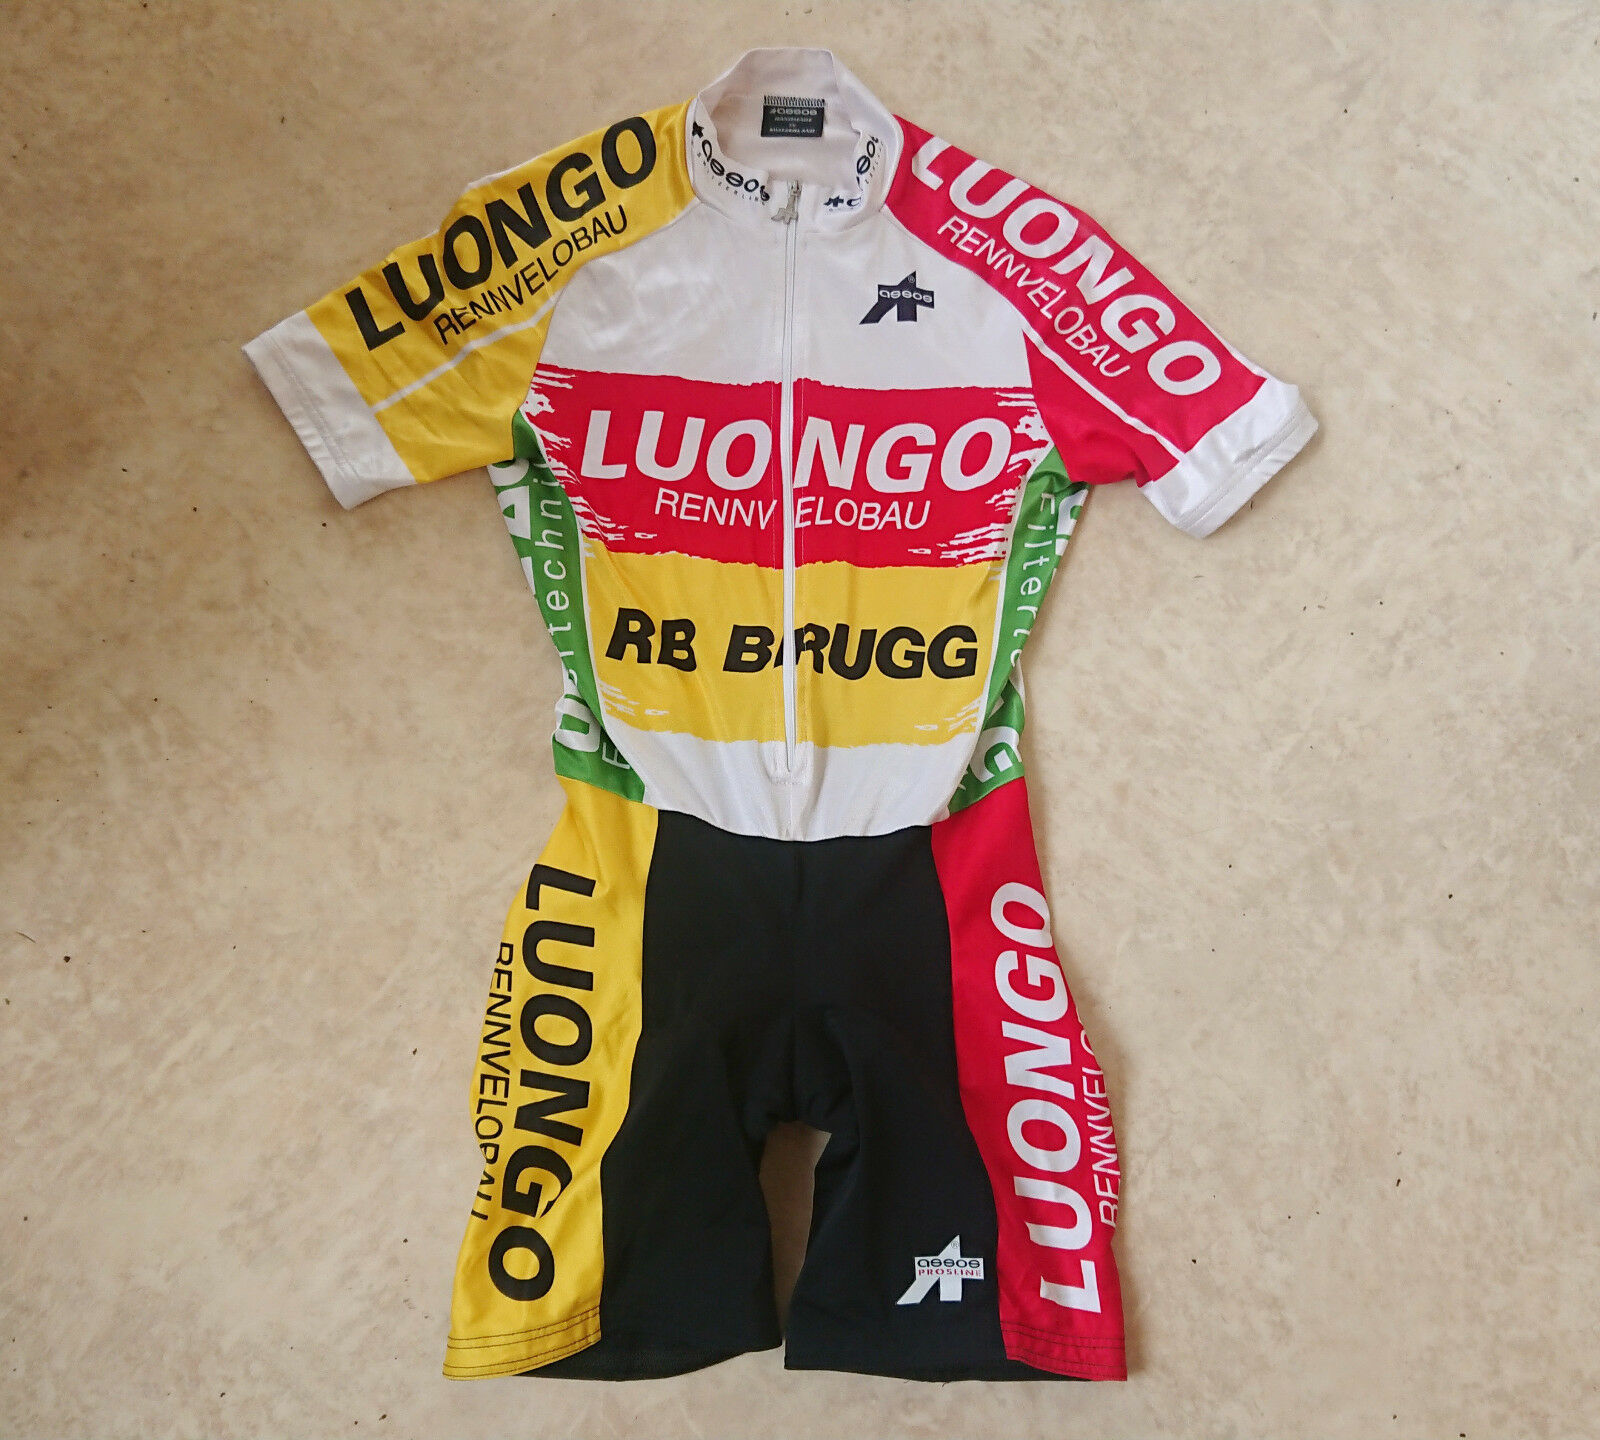 ASSOS Prosline Team Luongo Rennvelobau Cycling Suite Jersey Shorts Size M